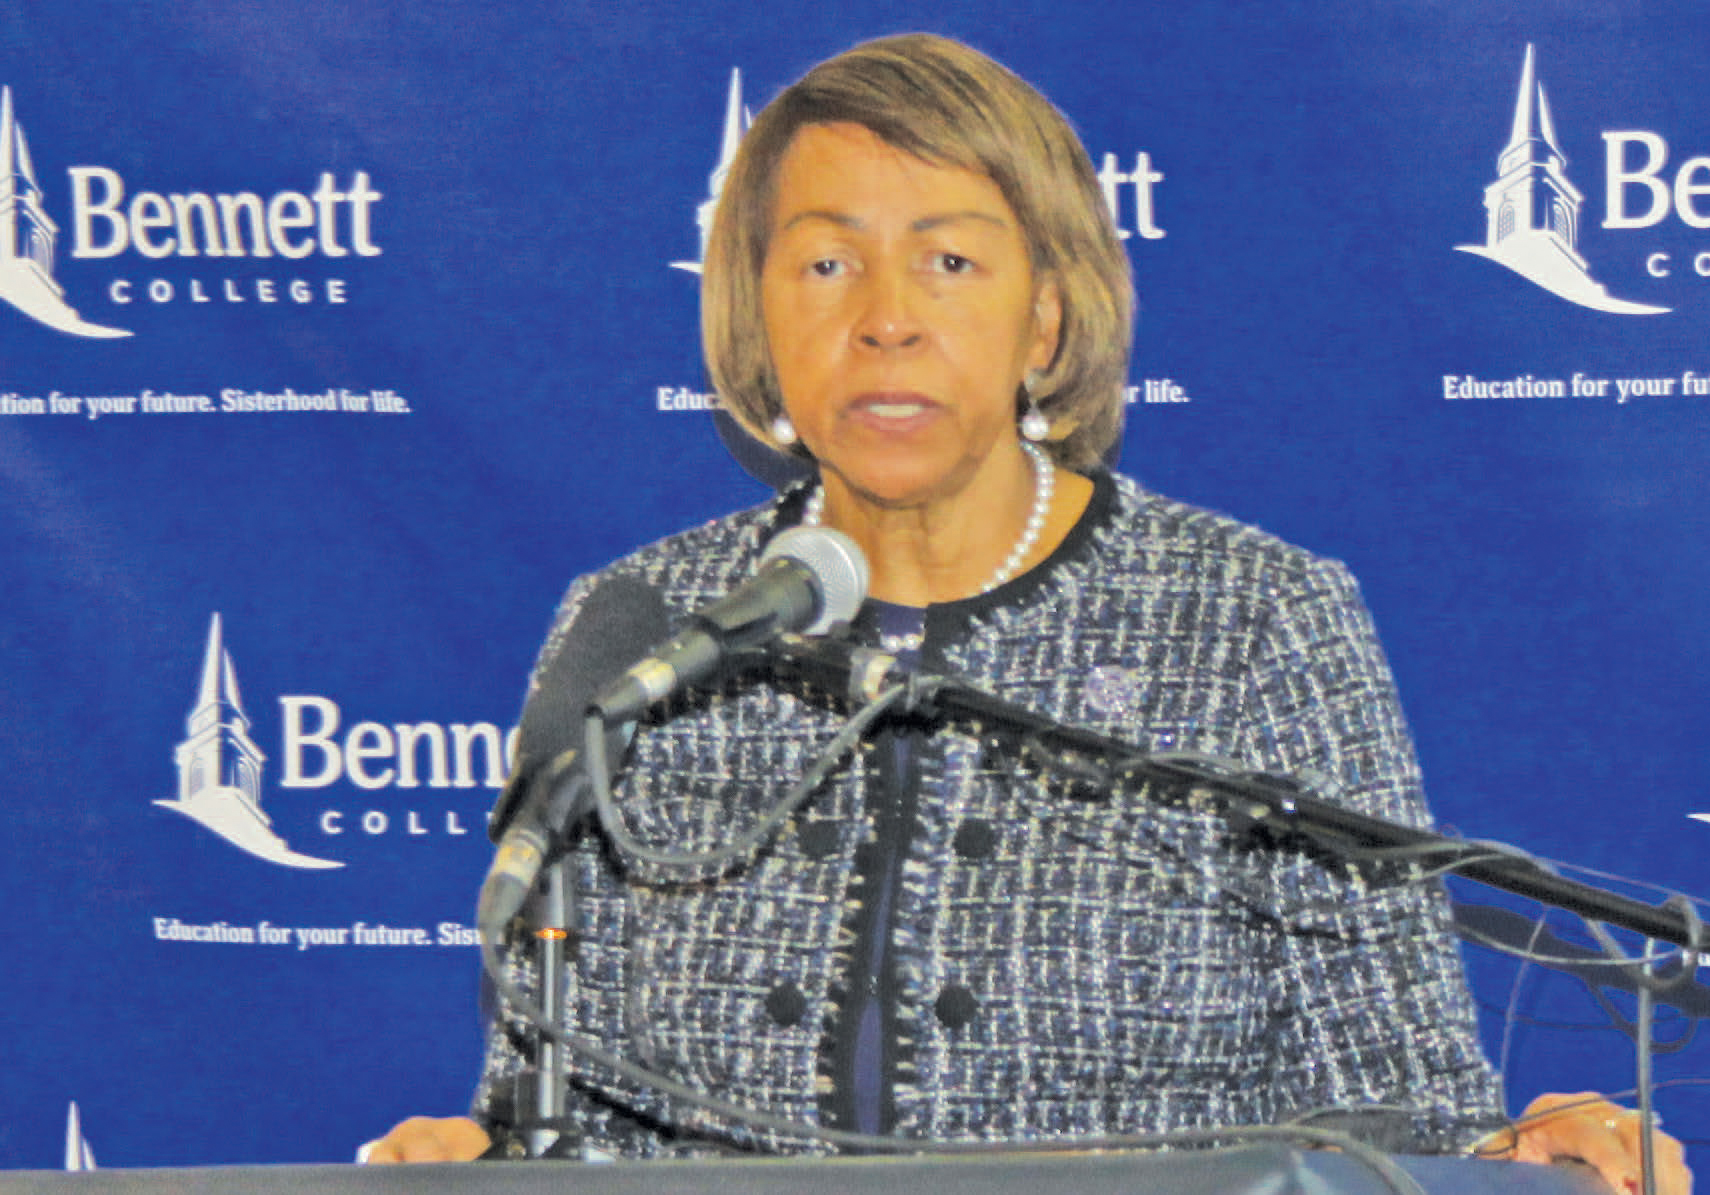 bennett college works to secure funding to save accreditation